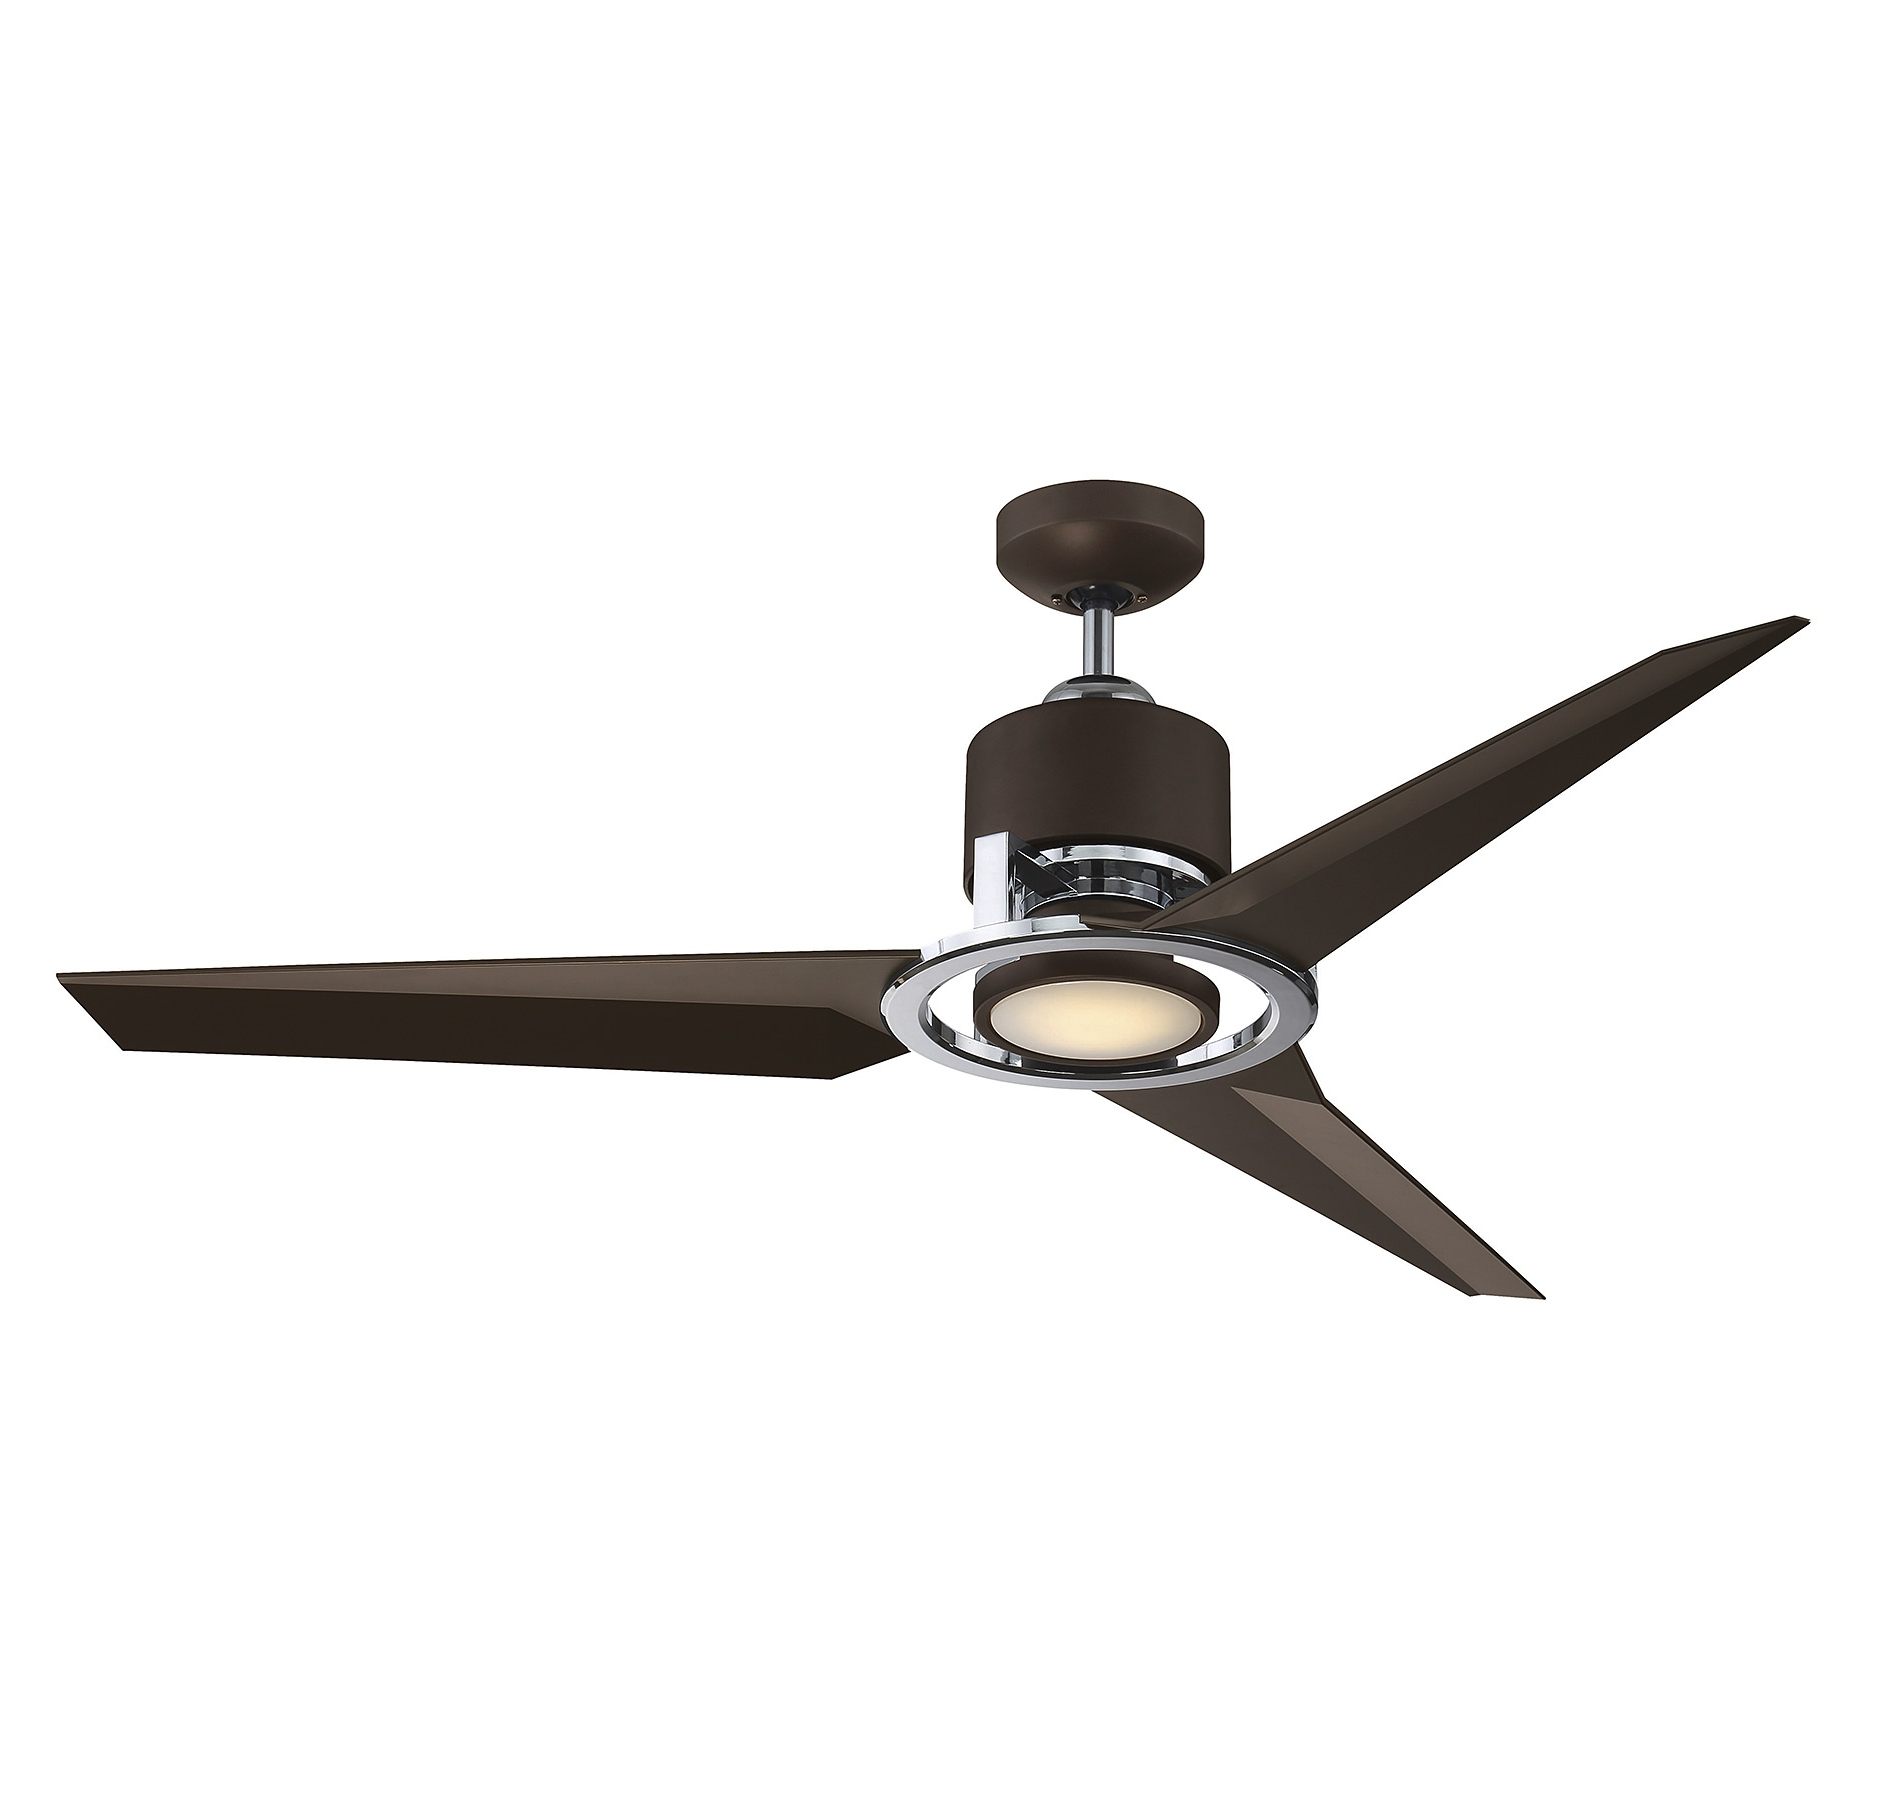 3 Blade Outdoor Ceiling Fan Lighting And Ceiling Fans, 3 Blade Inside Famous 52 Inch Outdoor Ceiling Fans With Lights (Gallery 8 of 20)